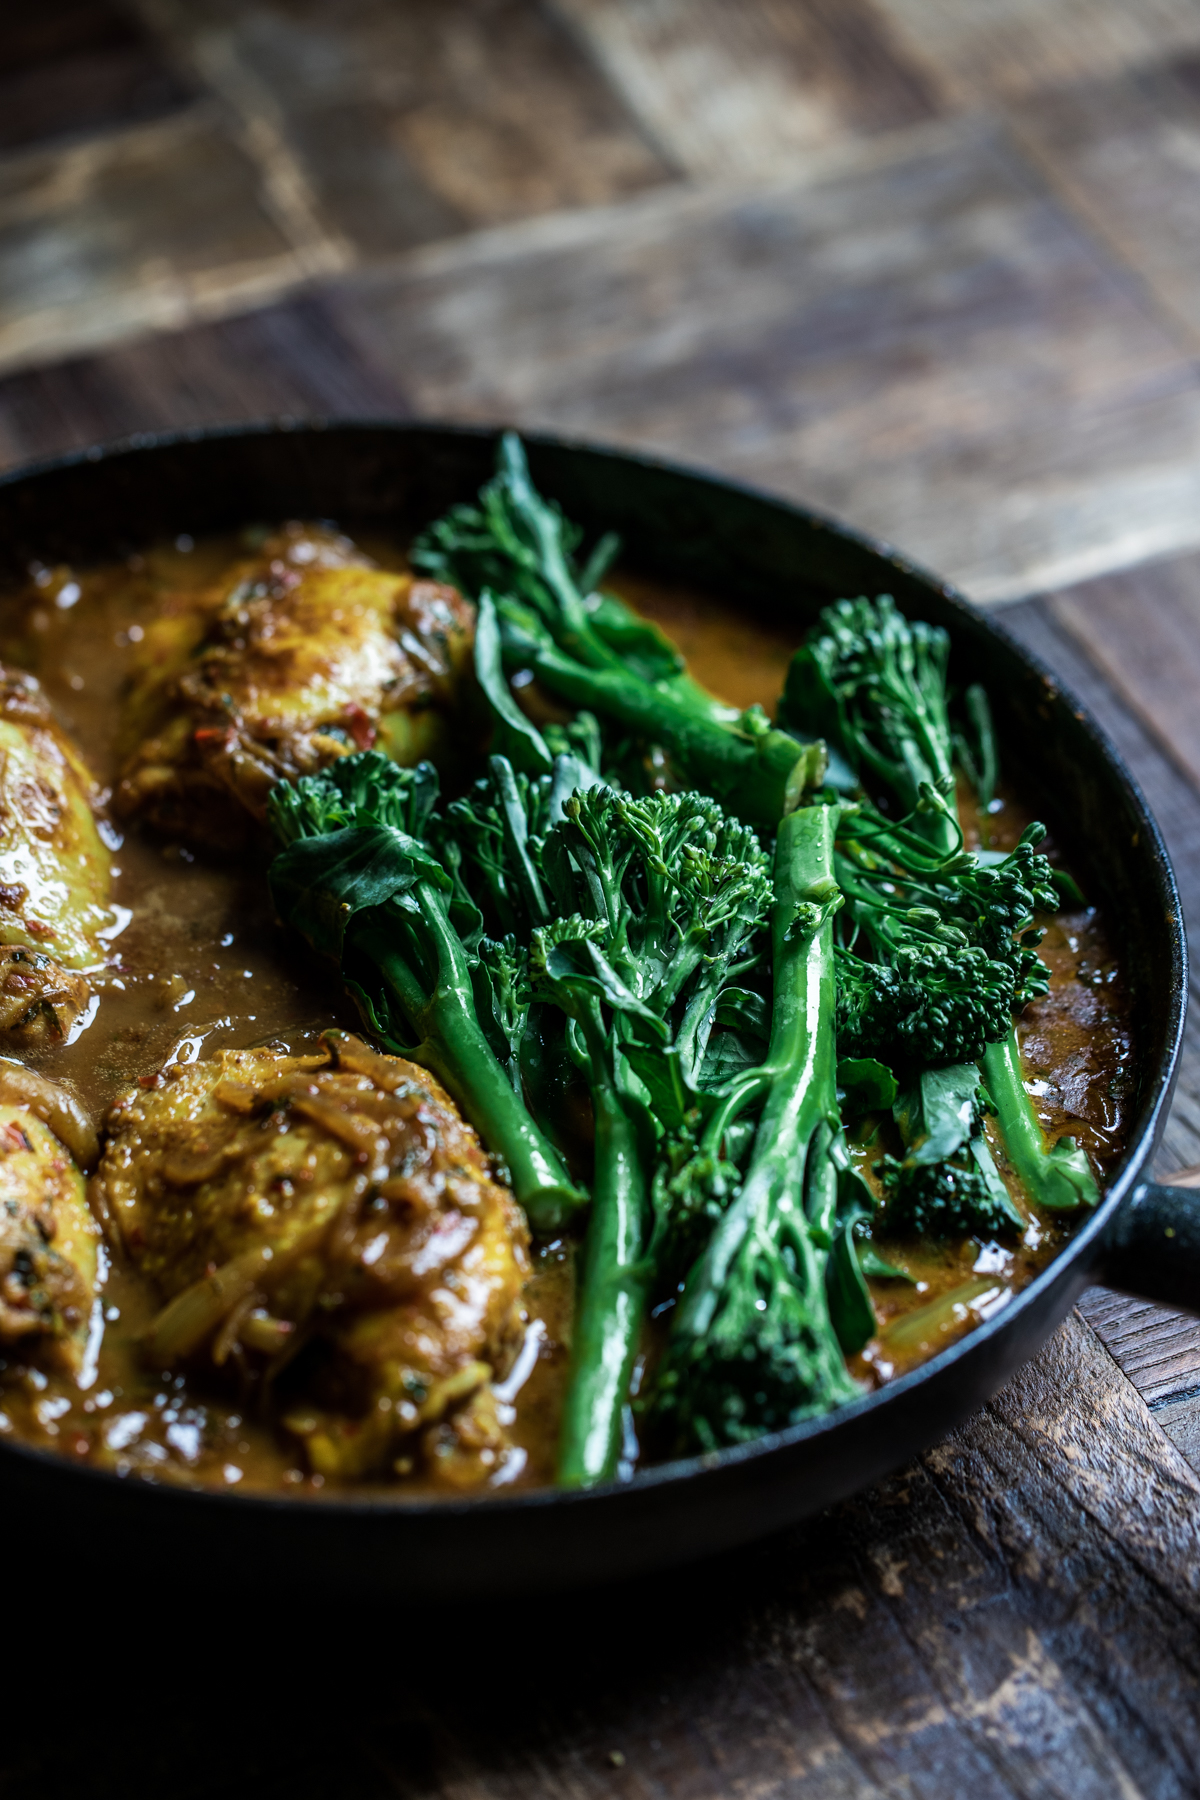 Malaysian chicken thigh curry cooking in a black cast iron pan with broccoli.